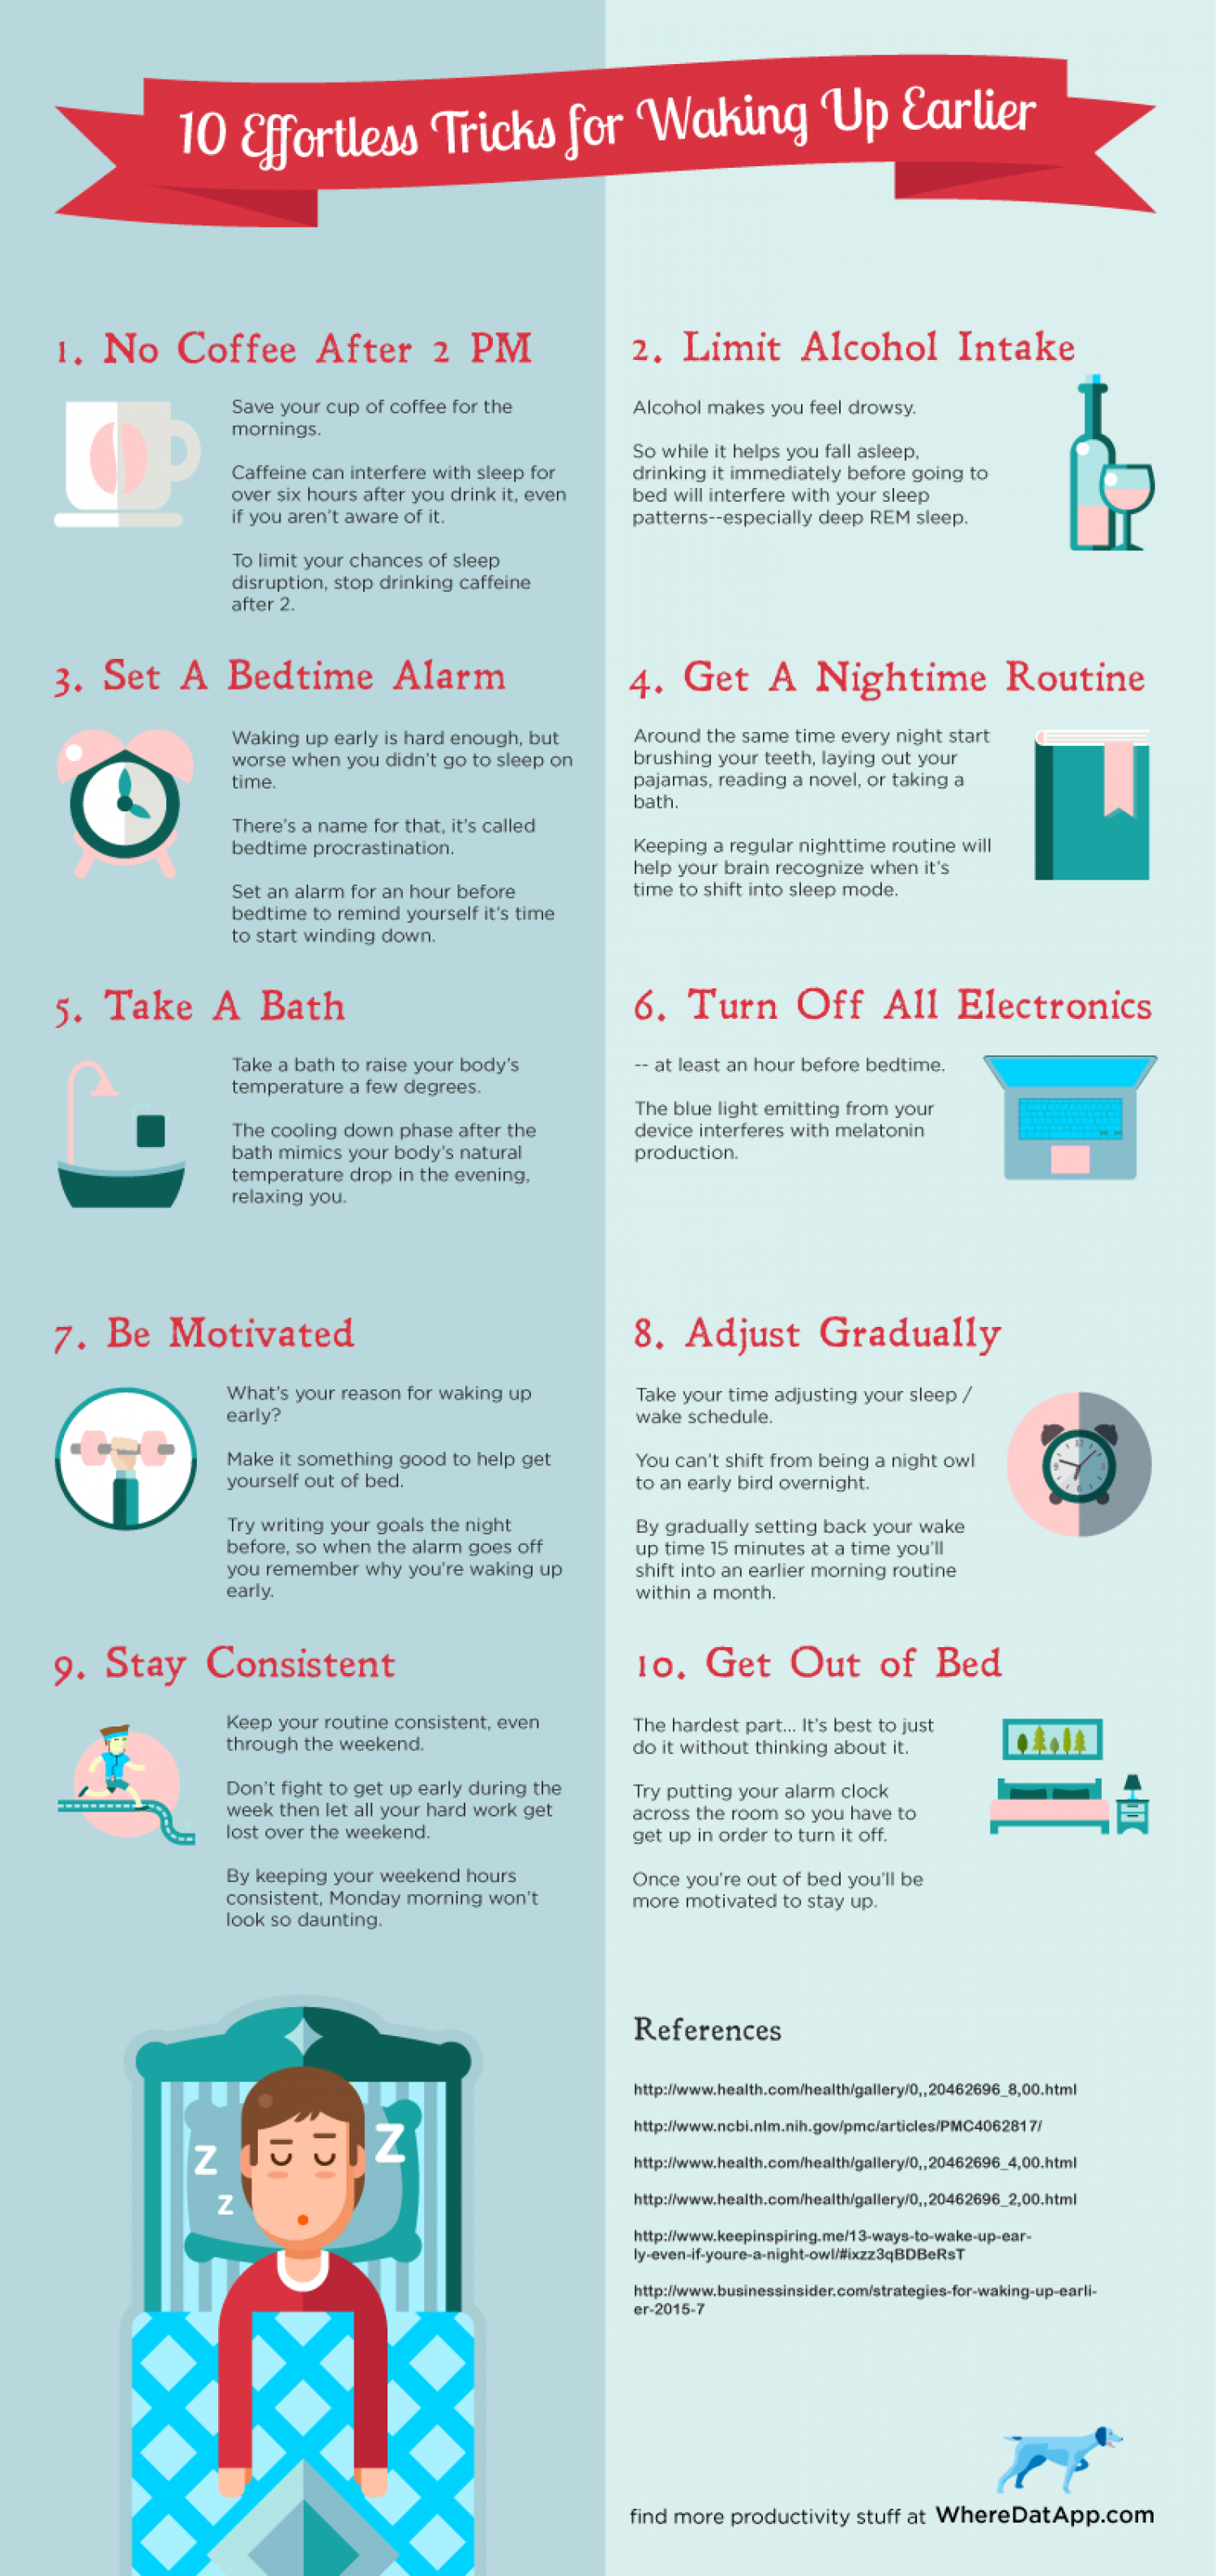 10 Effortless Tricks to Waking up Earlier Infographic